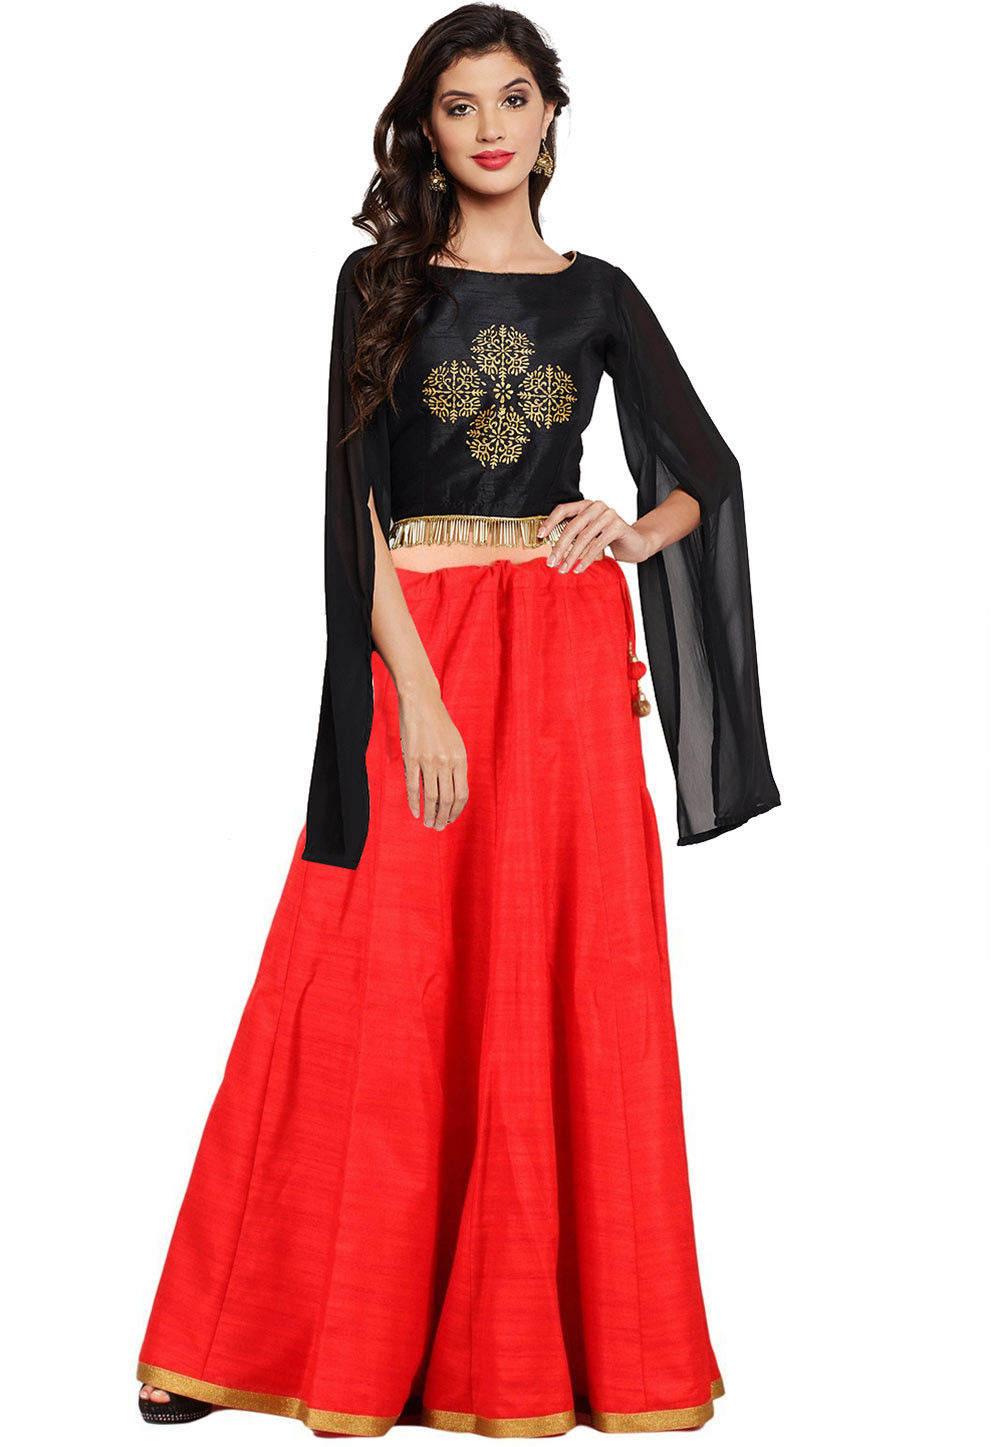 fc56817e3b Block Printed Dupion Silk Crop Top with Skirt in Black and Red : TRB1169